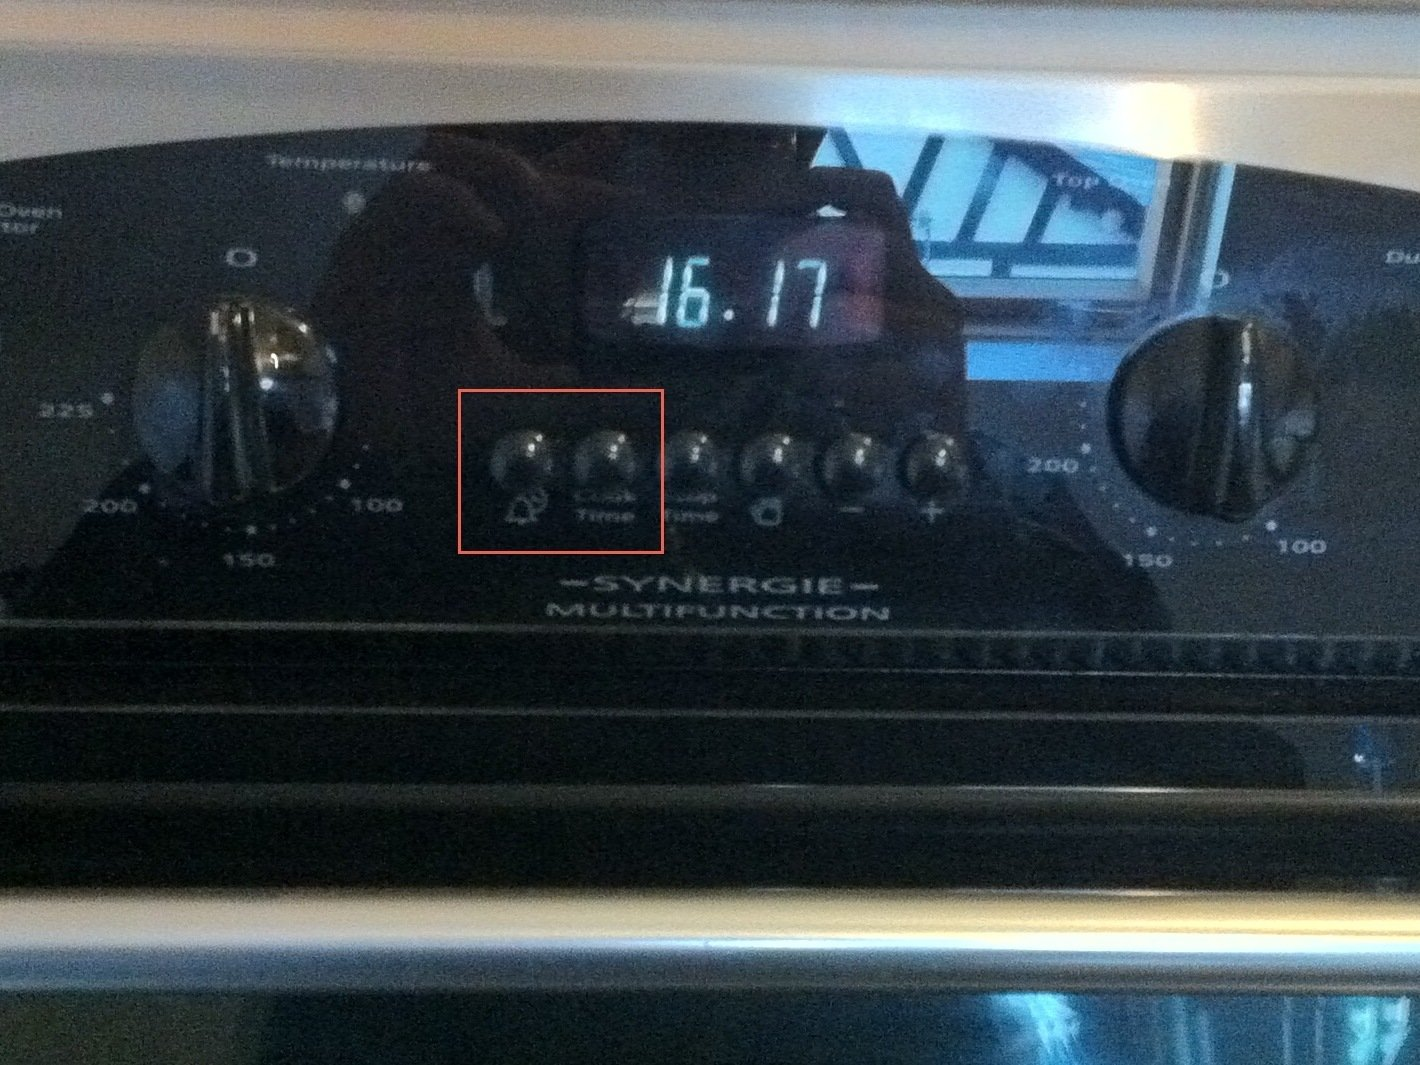 Belling Synergie Oven Technique - iFixit Repair Guide